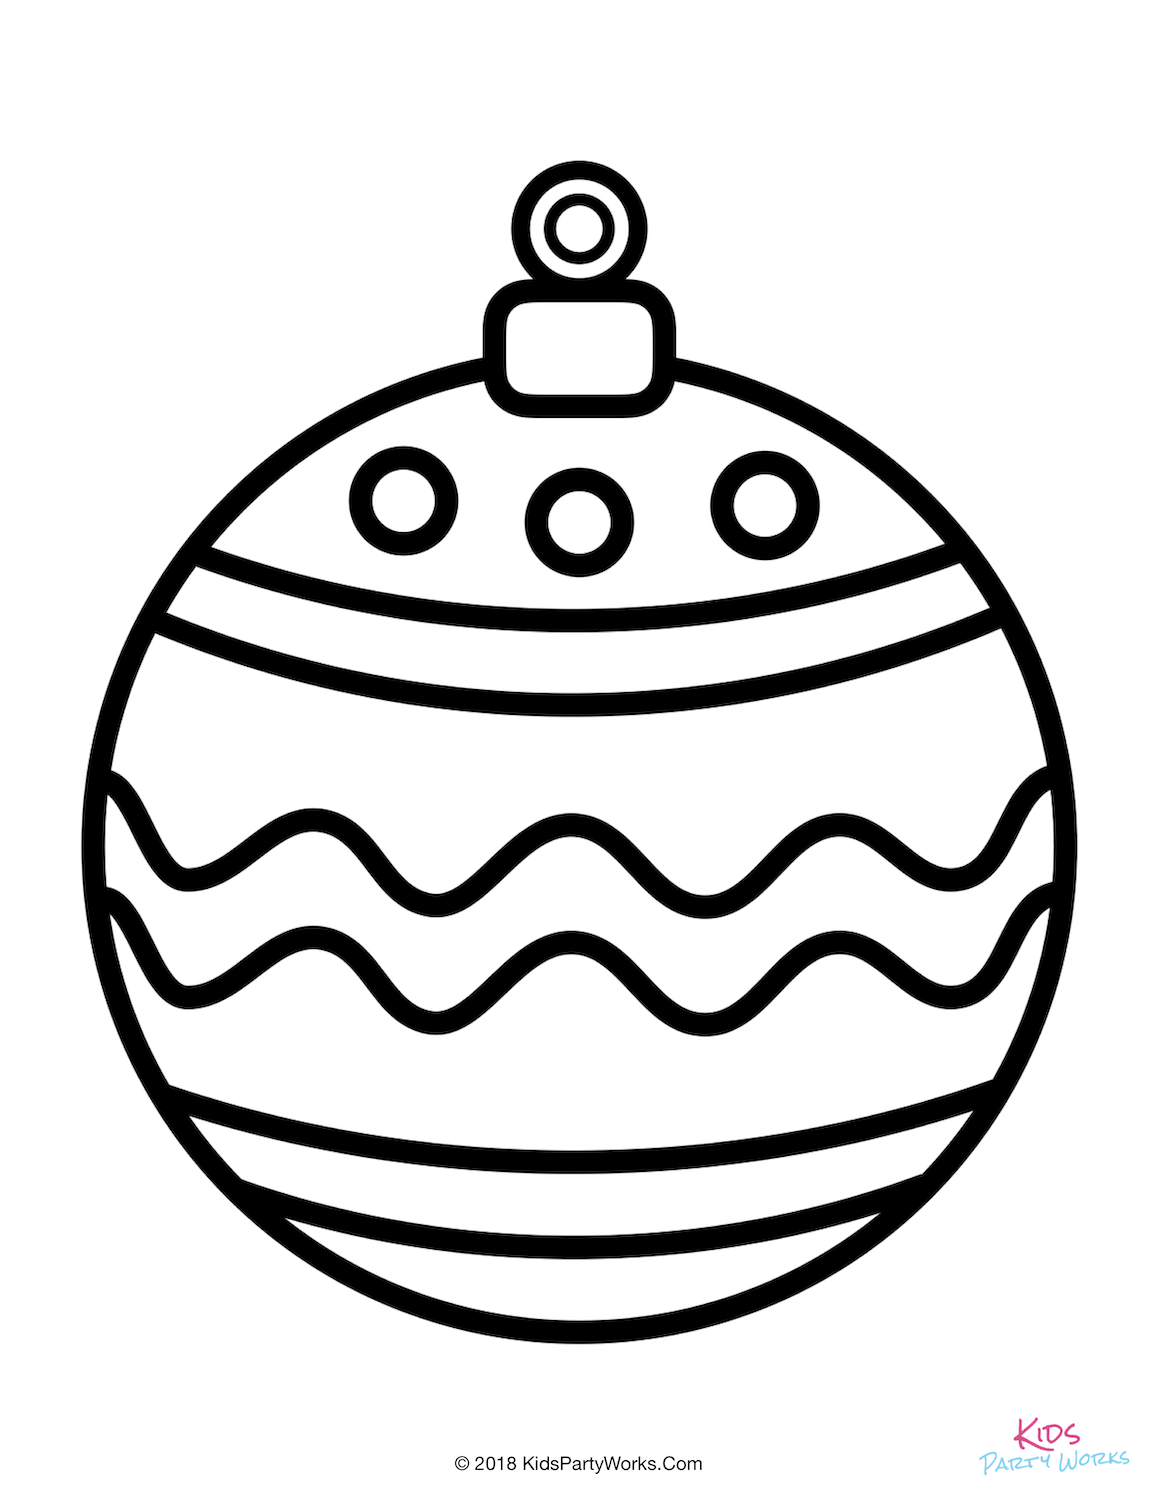 christmas ornament coloring pages christmas ornament coloring pages best coloring pages christmas pages coloring ornament